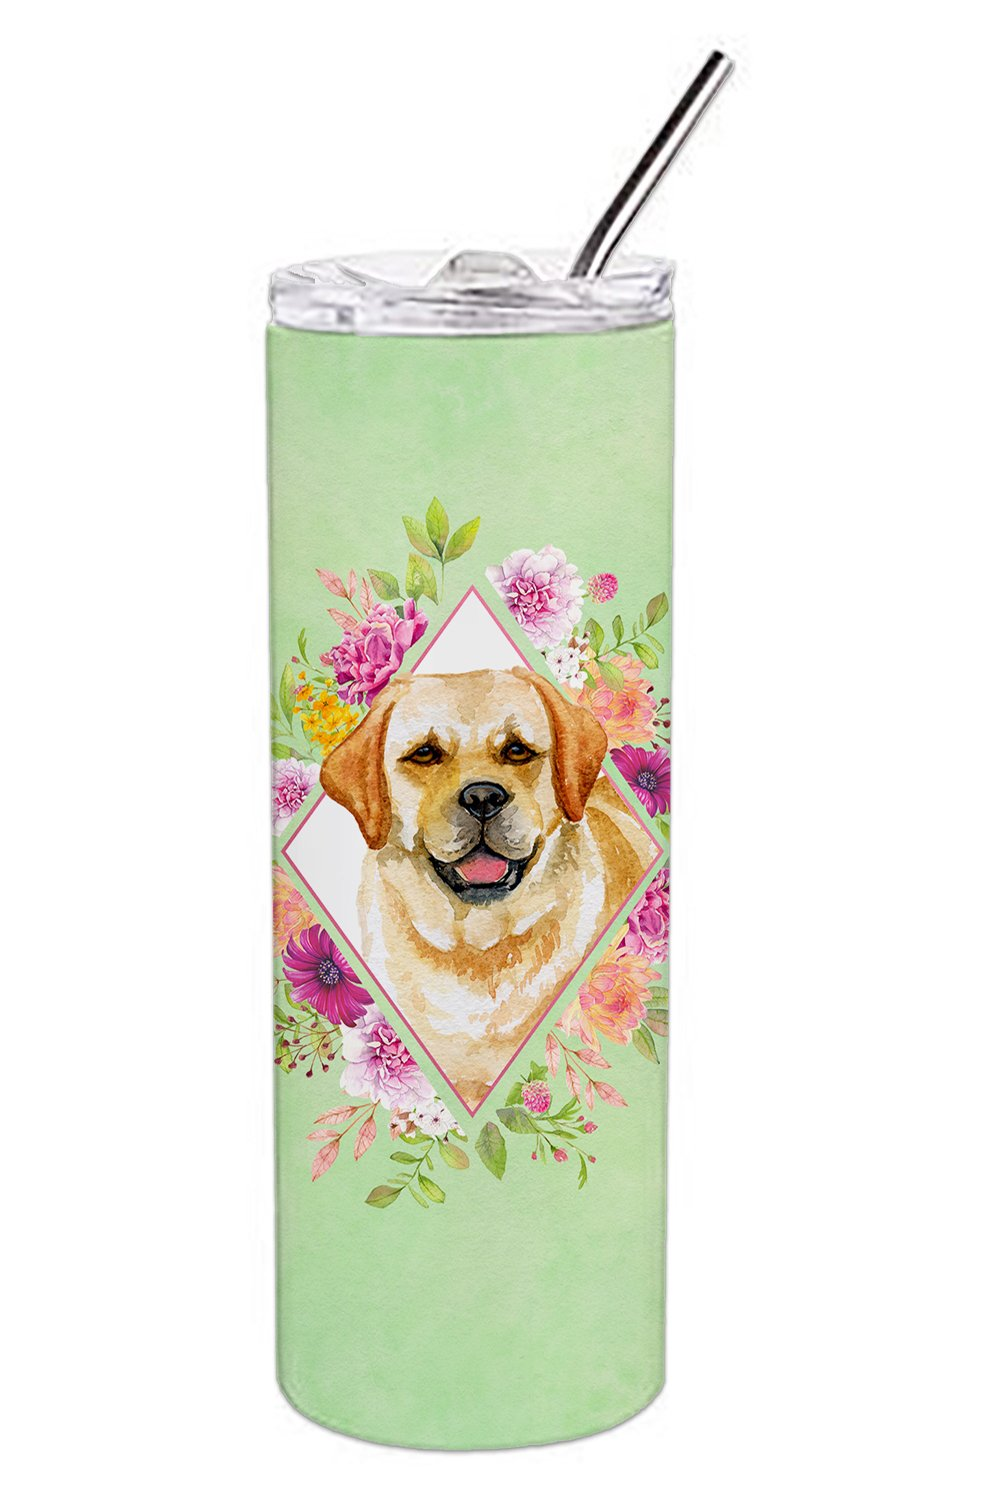 Golden Retriever Green Flowers Double Walled Stainless Steel 20 oz Skinny Tumbler CK4309TBL20 by Caroline's Treasures